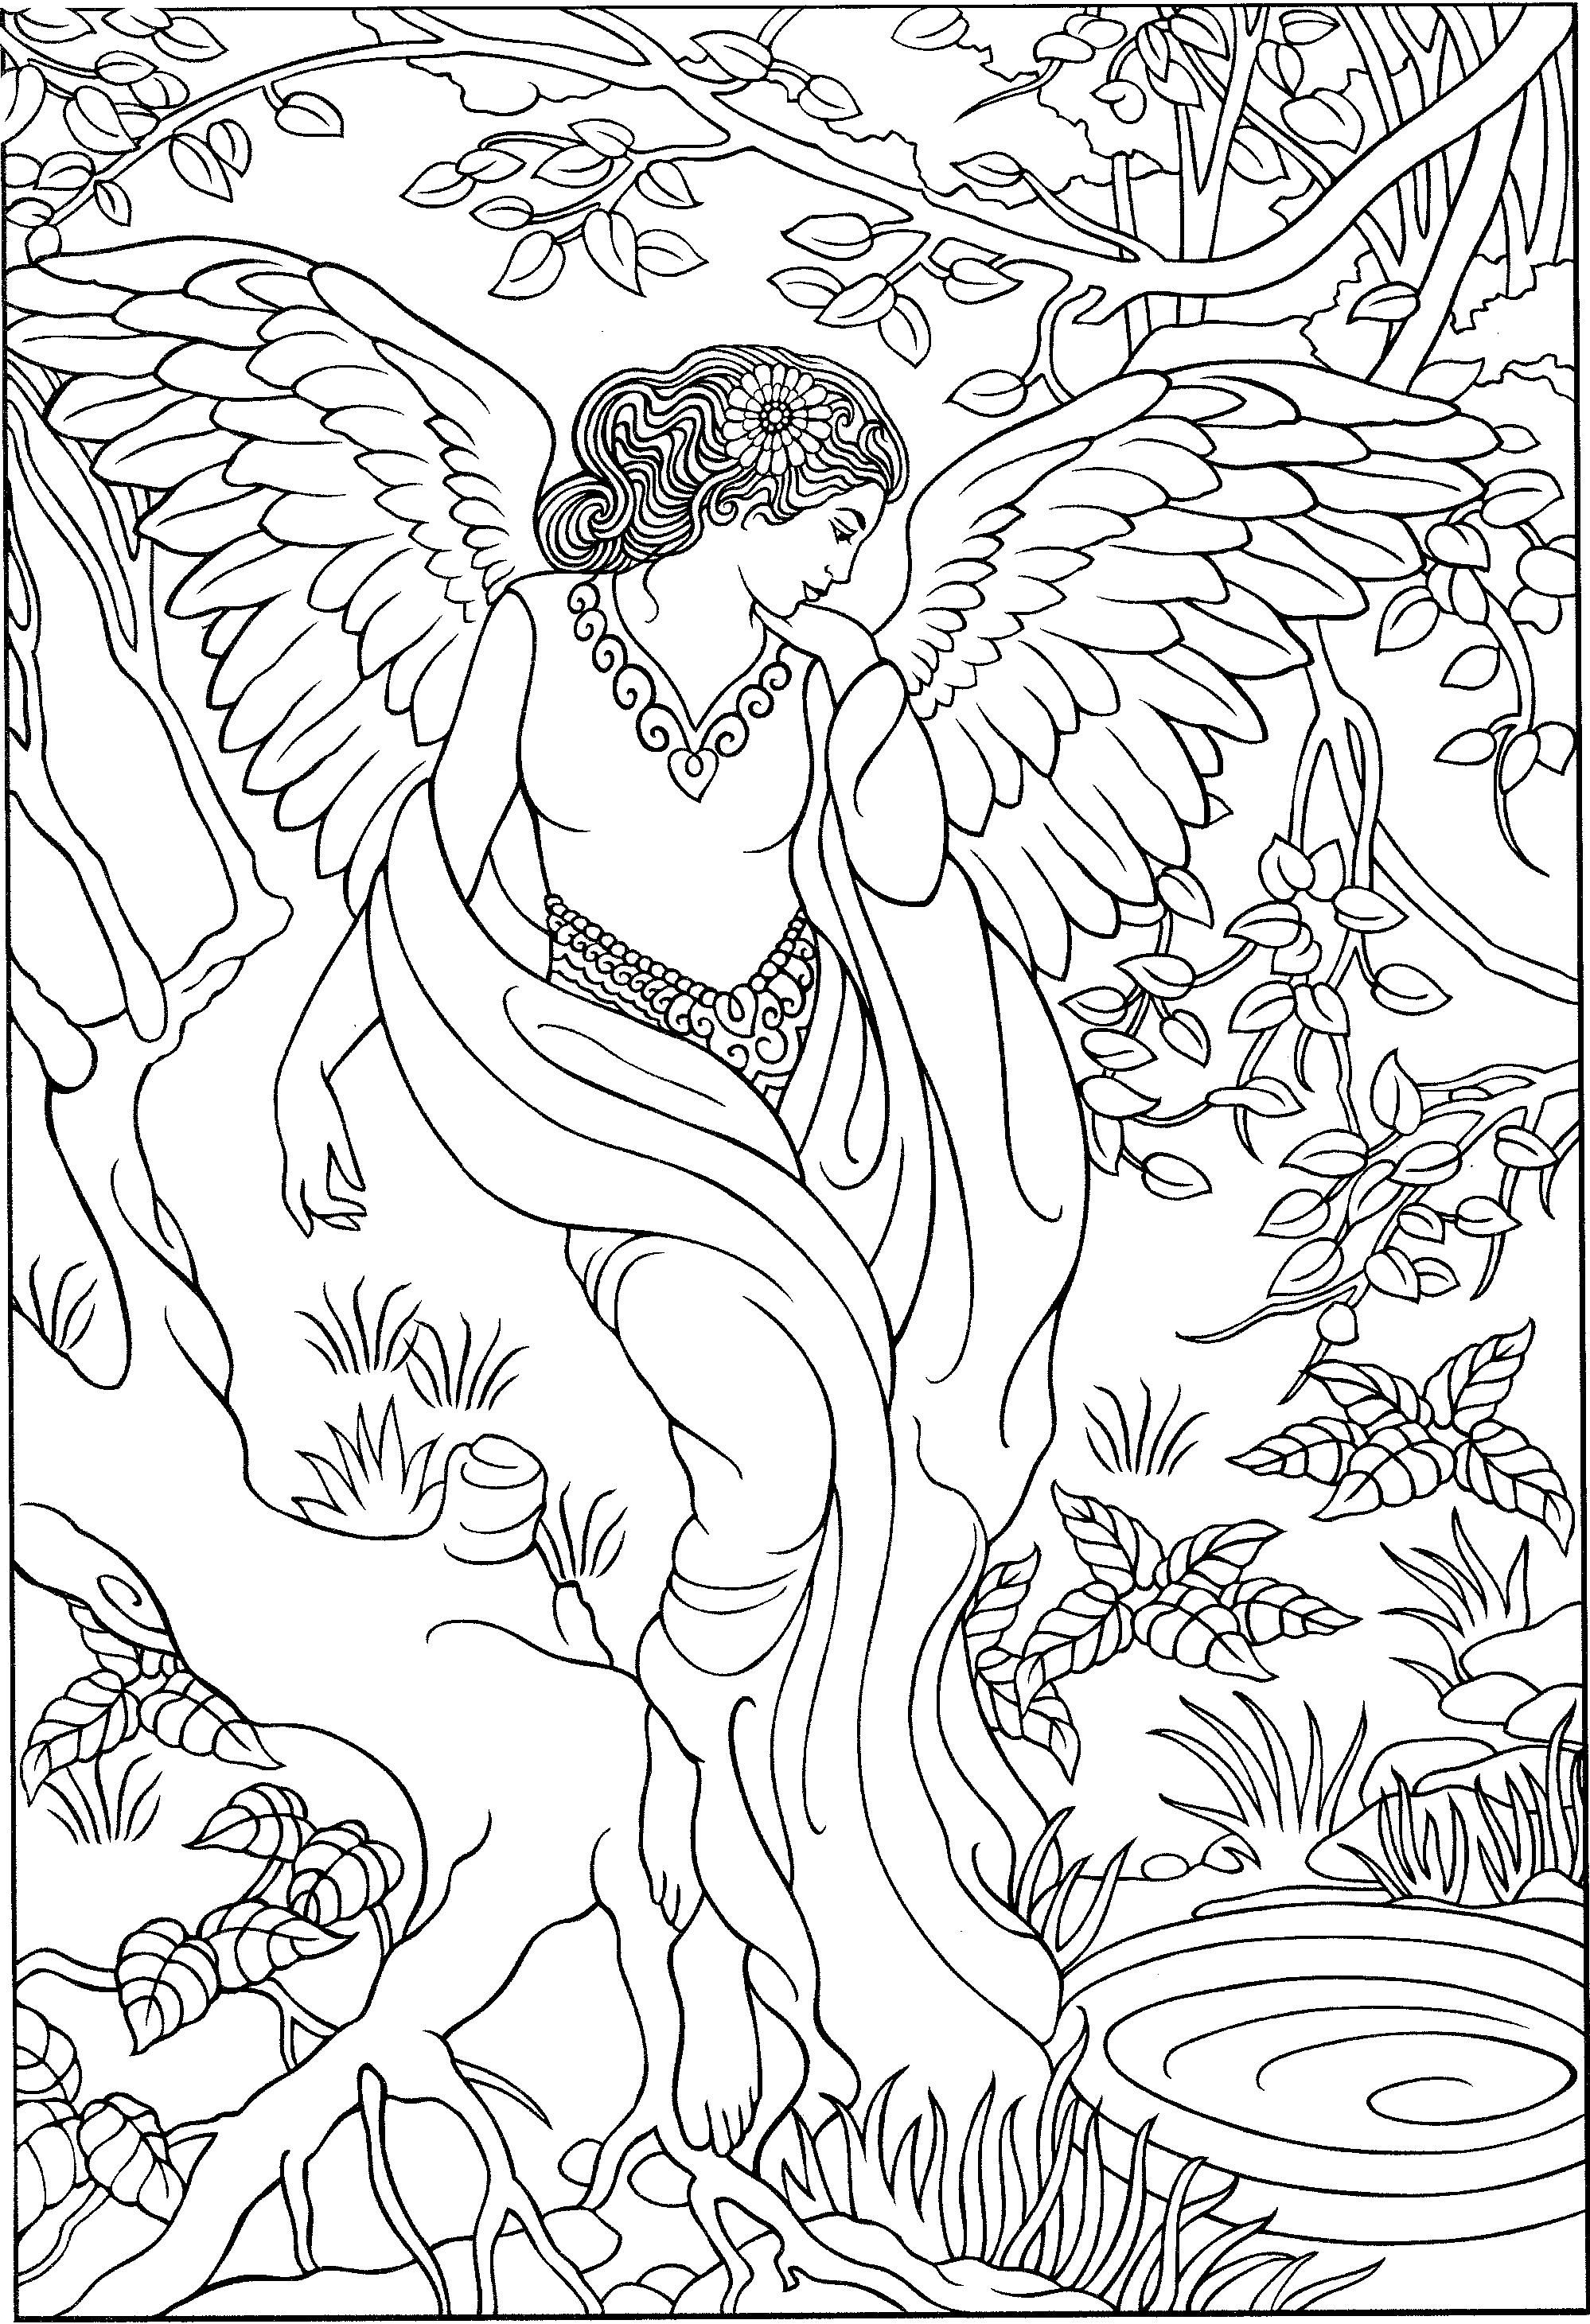 angel coloring pages for adults angel coloring sheet adult coloring sheet by pages angel coloring for adults